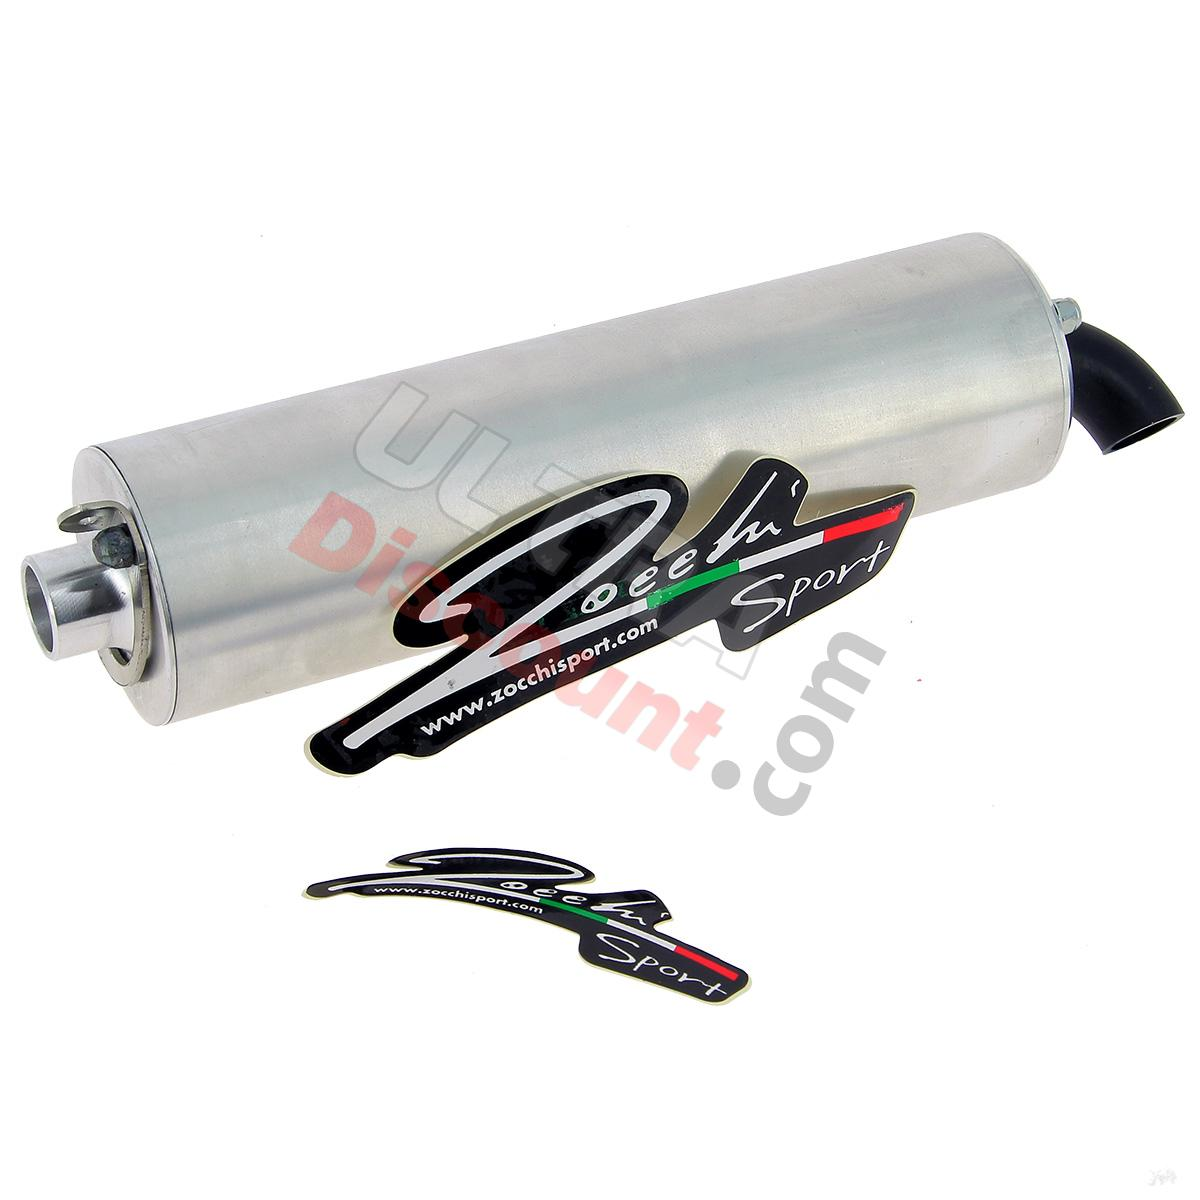 muffler for zocchi exhaust for pocket bike 215mm 94db exhaust system pocket bike spare